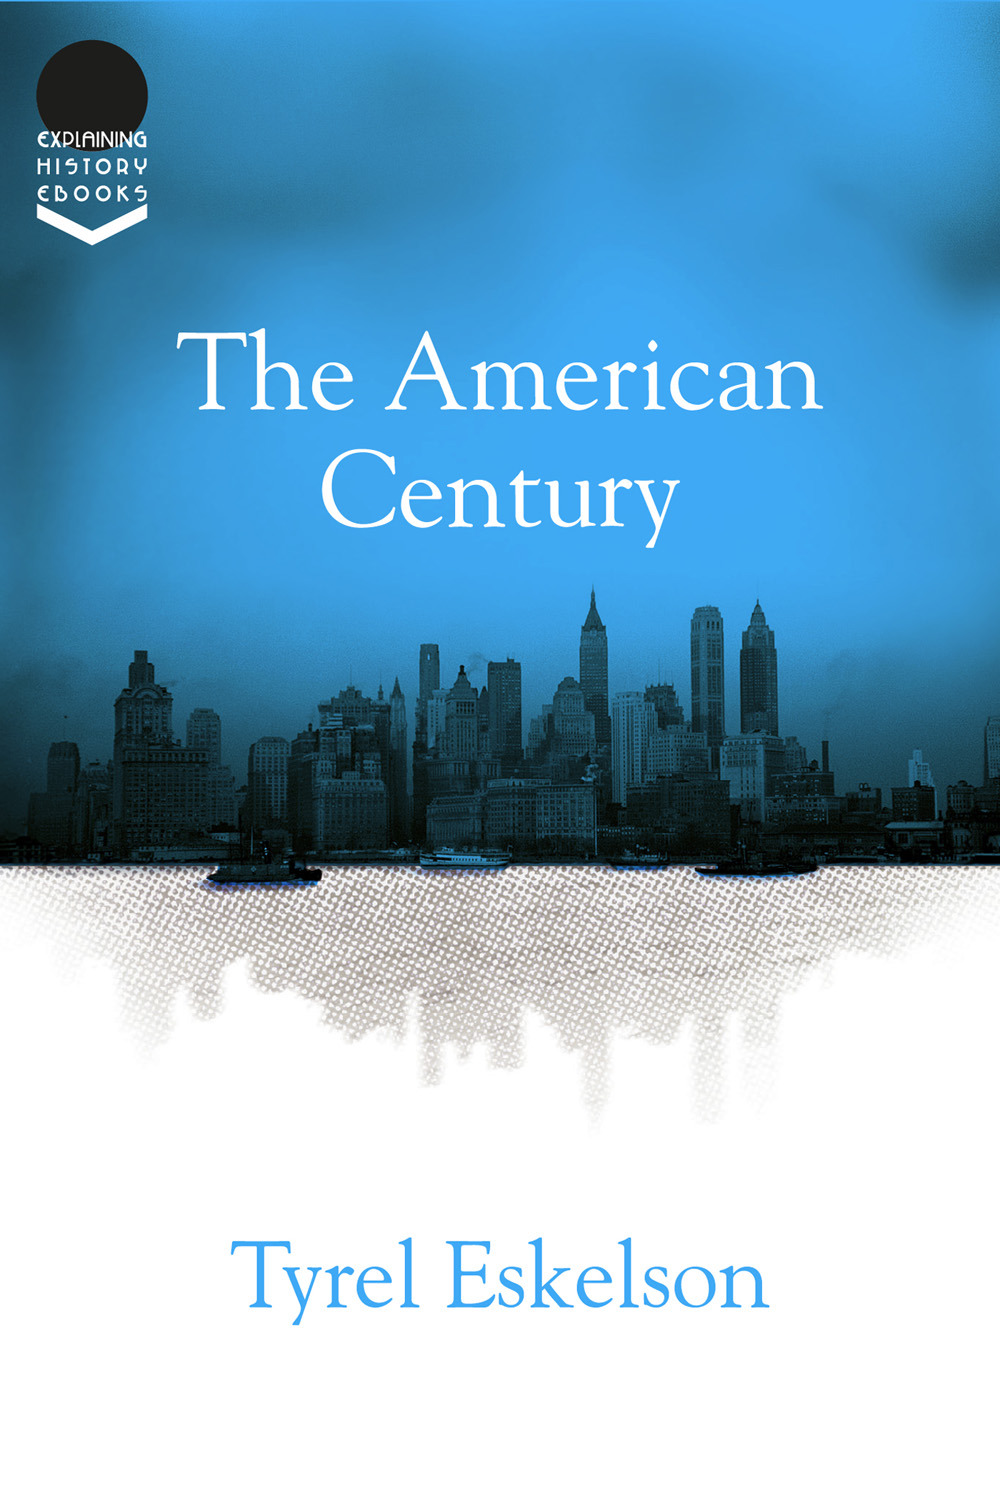 Eskelson, Tyrel - The American Century, ebook